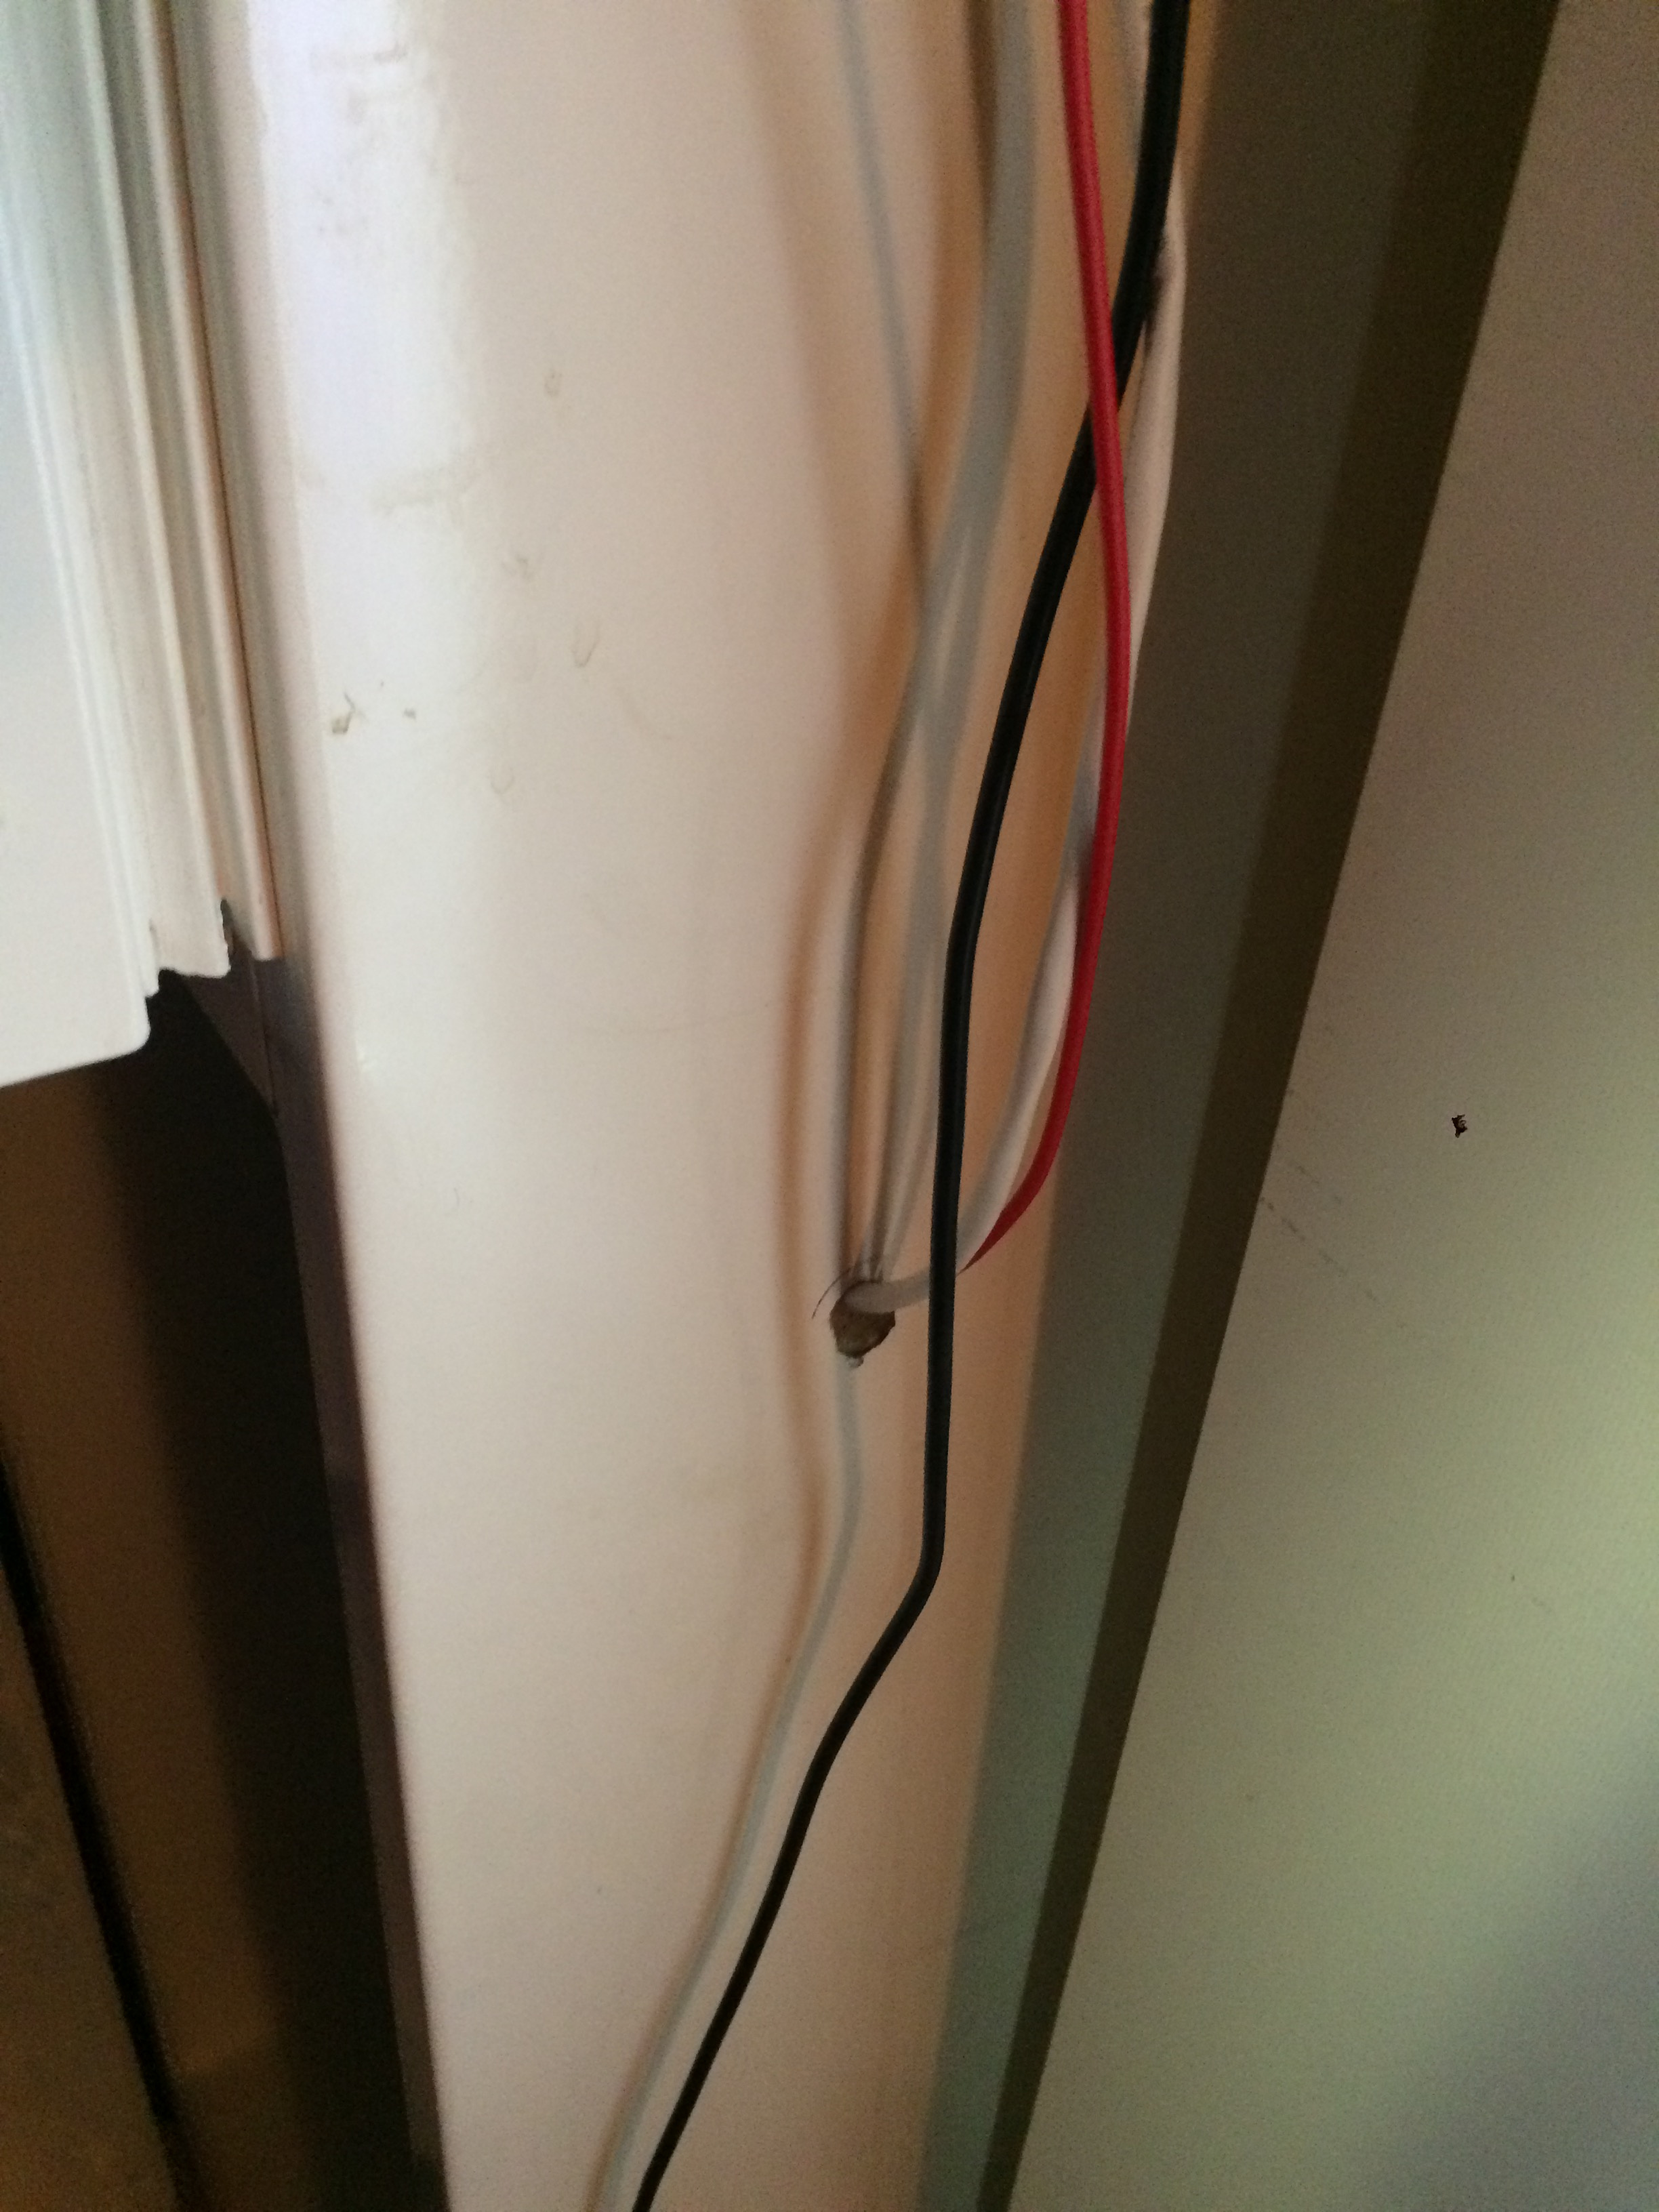 Interfacing Stc 1000 Temperature Controller General Brewpi Community Wiring Metal Back Box A Wire Through The Wall Old Simple Fridge With All Cooling Open In And No Danger Of Liquid Wakk